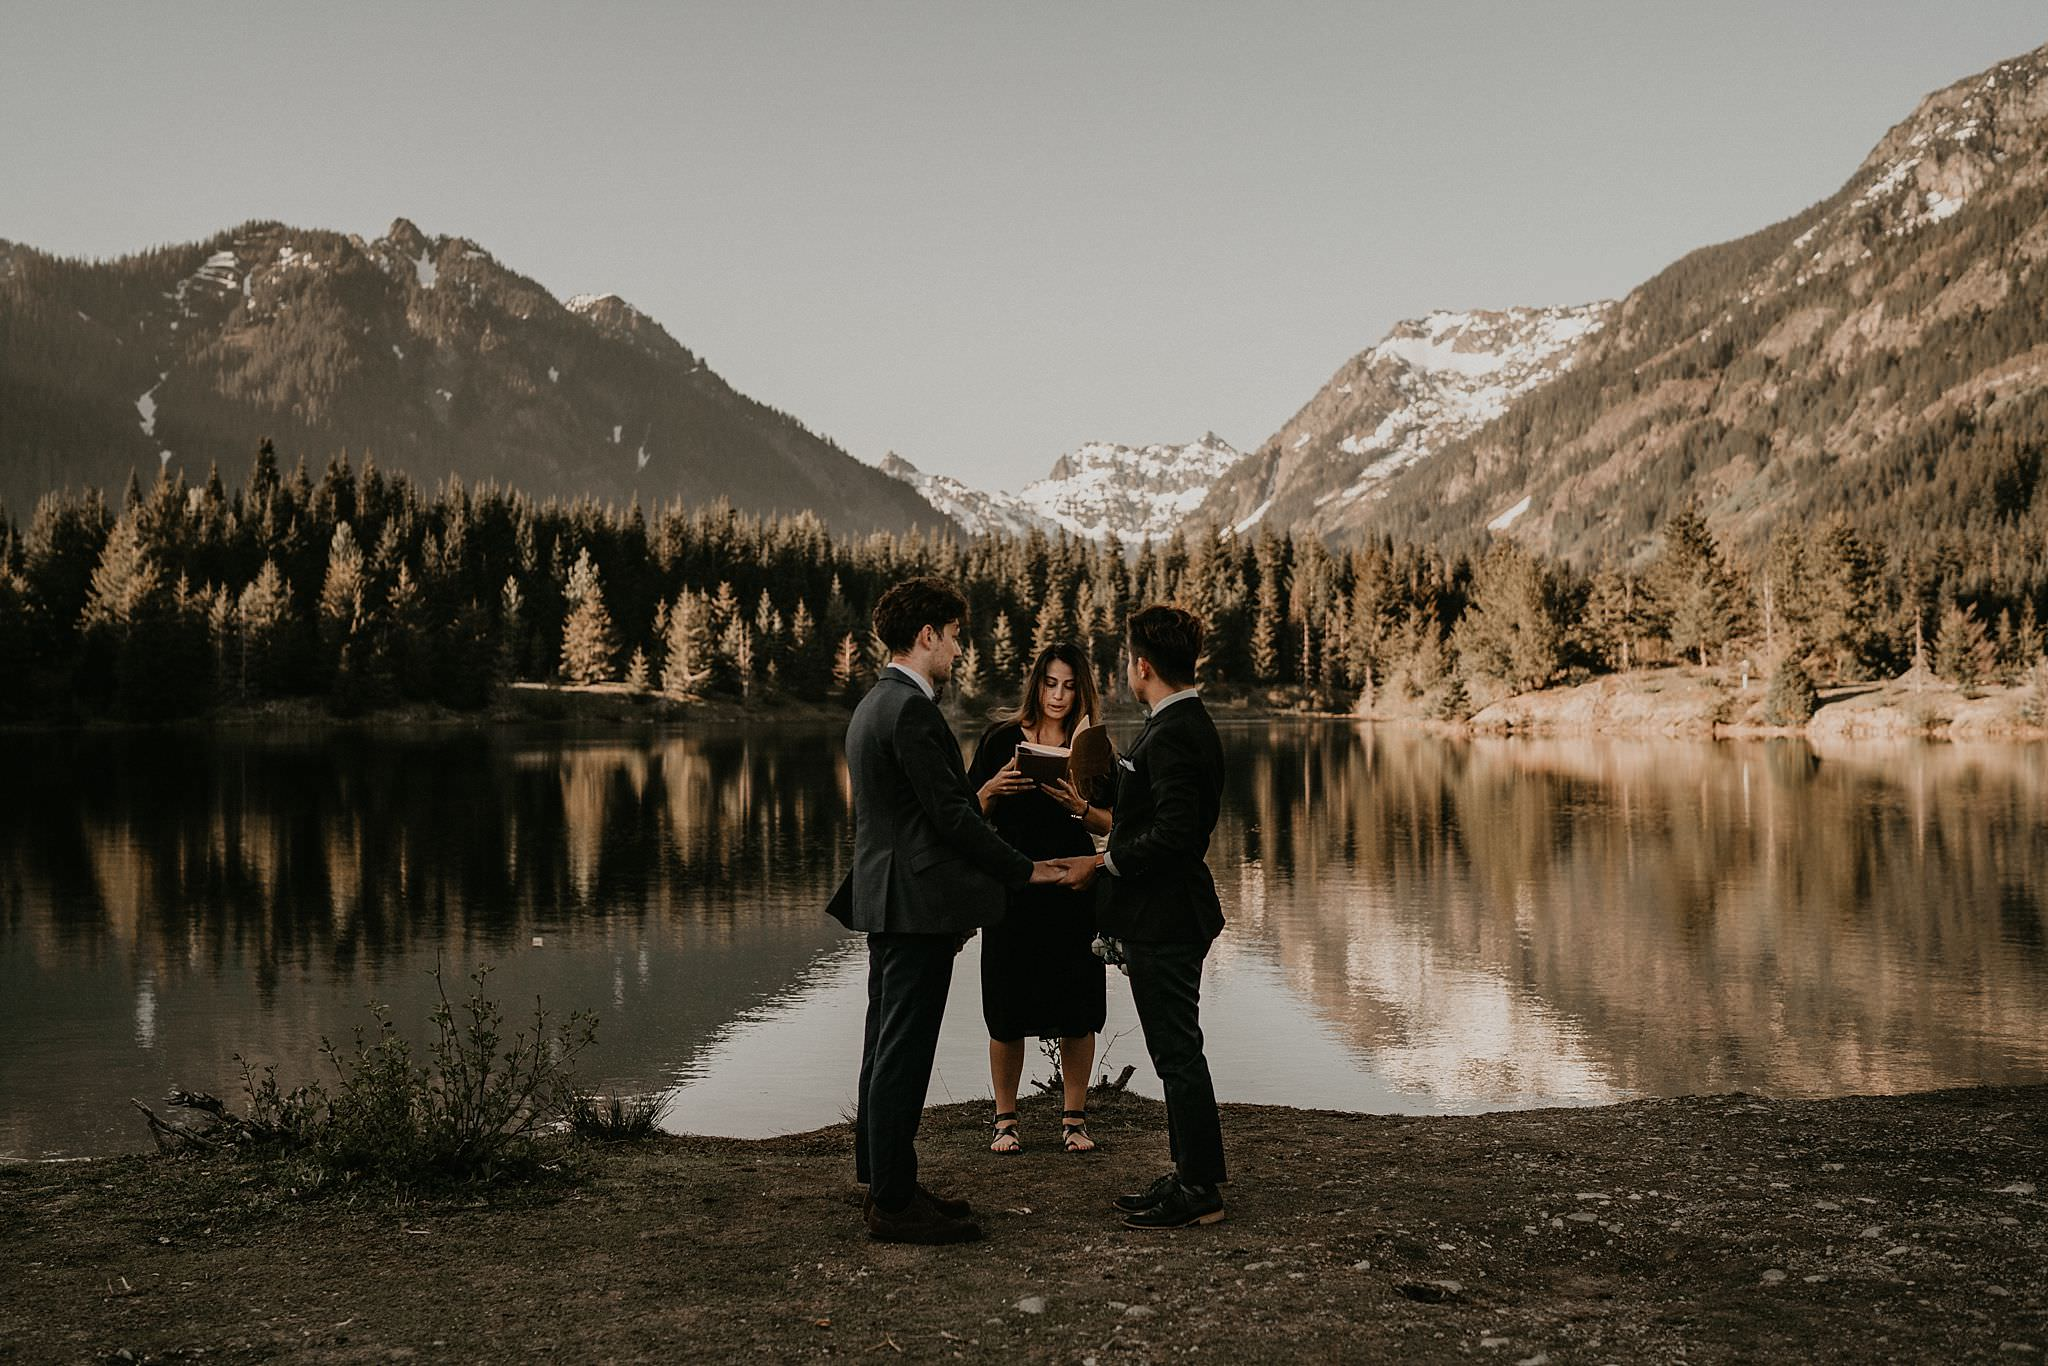 Gold Creek Pond Elopement Snoqualmie Pass